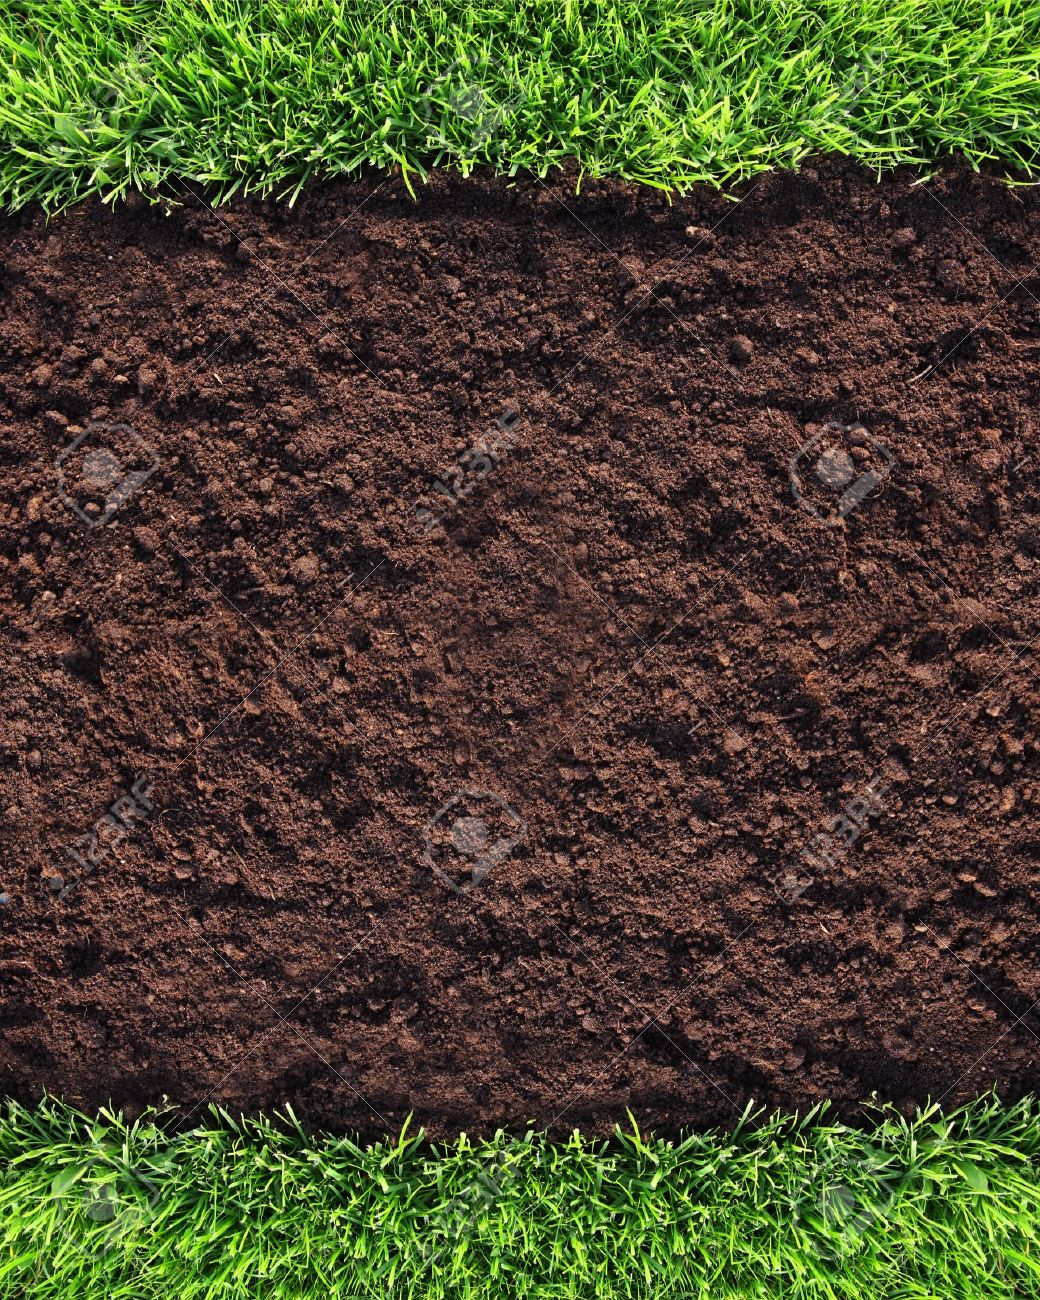 Healthy grass and soil background Stock Photo - 9726613